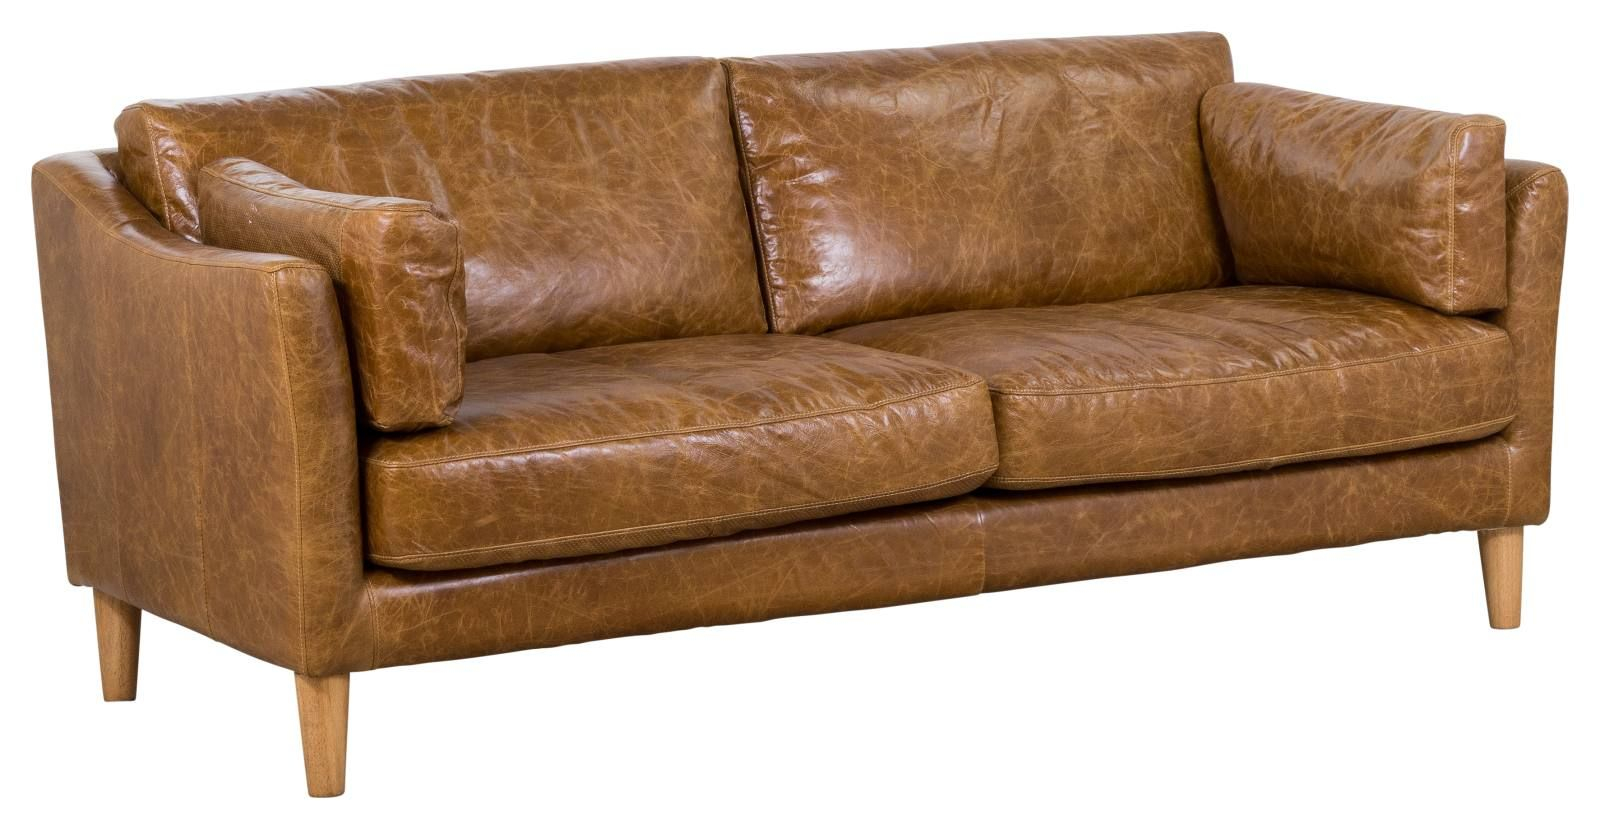 Nordic 3 Seater Leather Sofa Leather Sofas Armchairs In throughout dimensions 1600 X 829